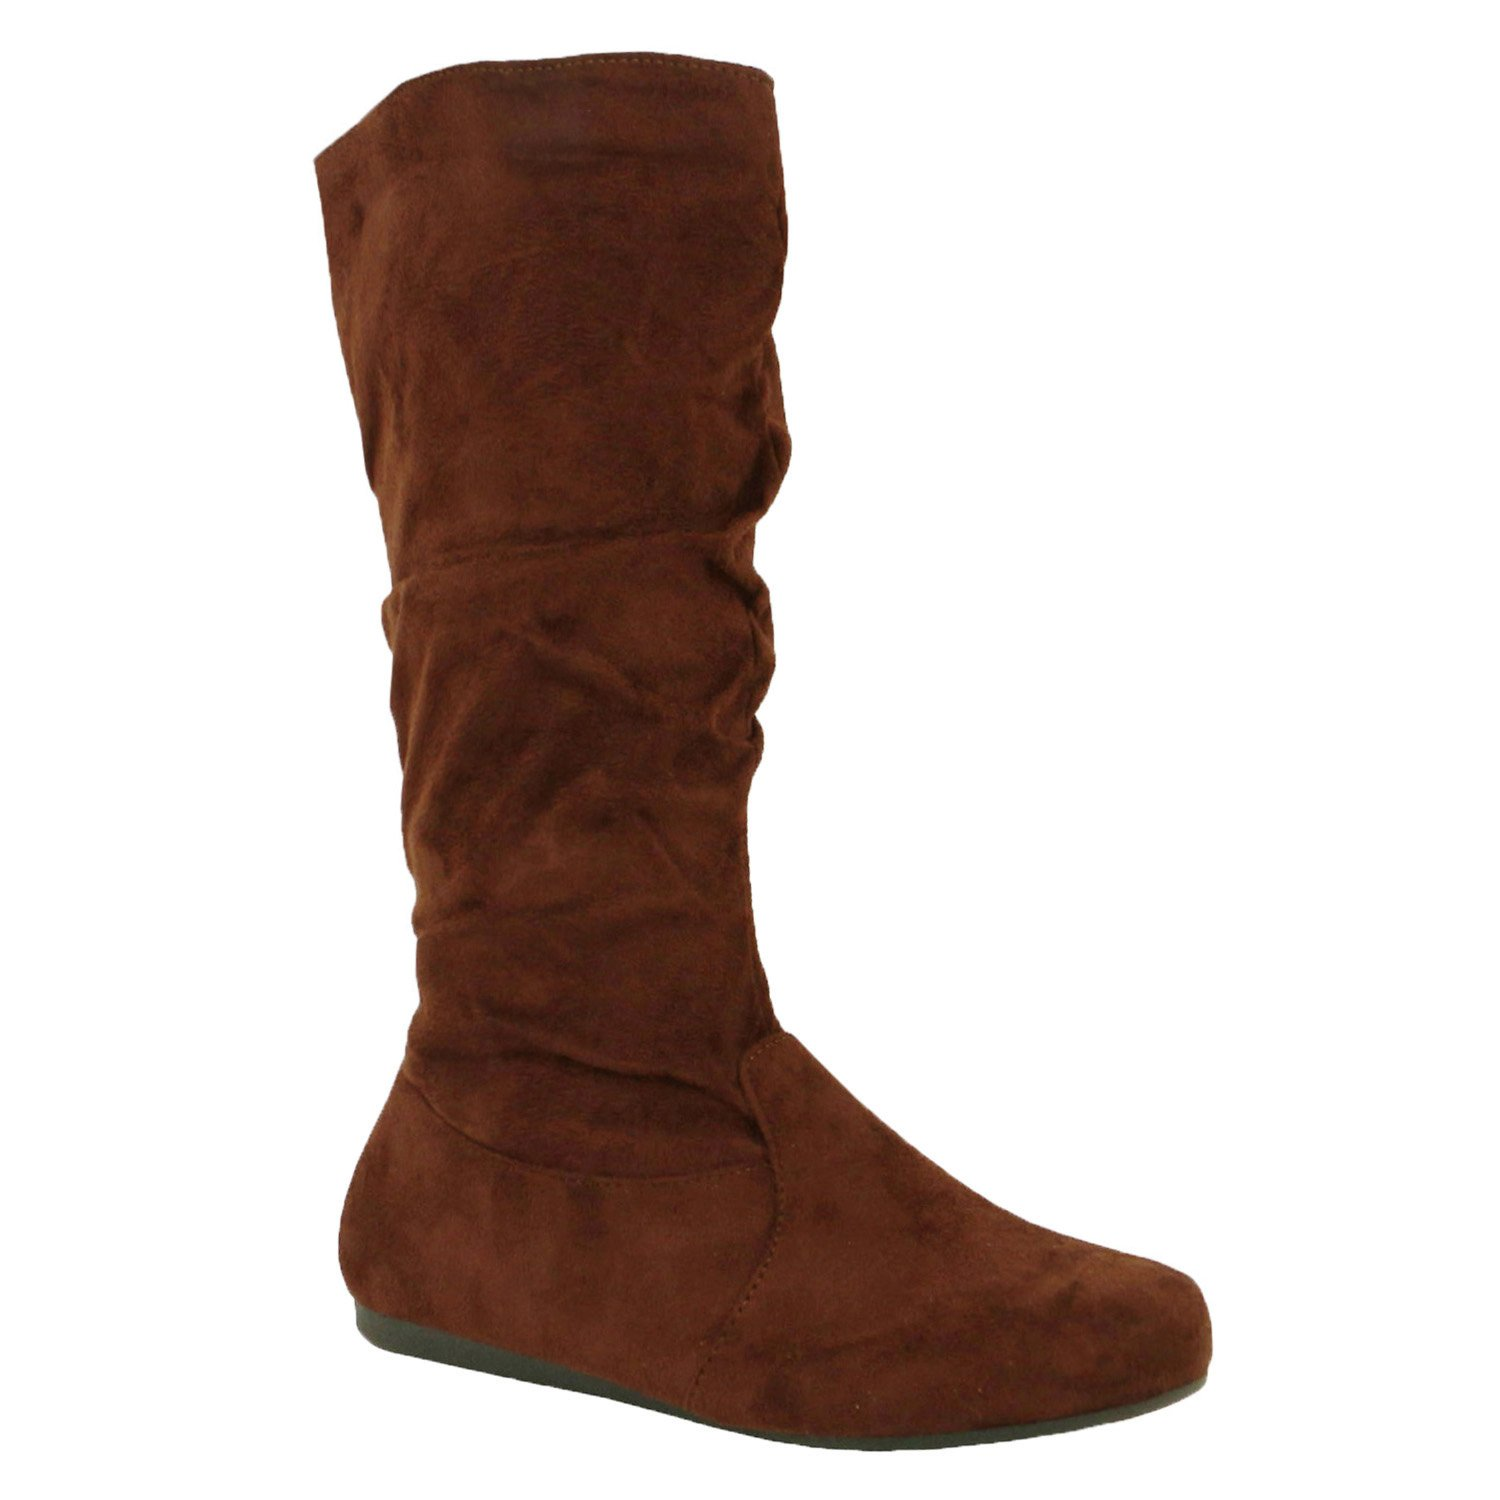 Guilty Shoes Womens Mid Calf Comfortable Slouchy Solid Color Flat Heel Boots Boots, Brown Suede, 6.5 (B) M US